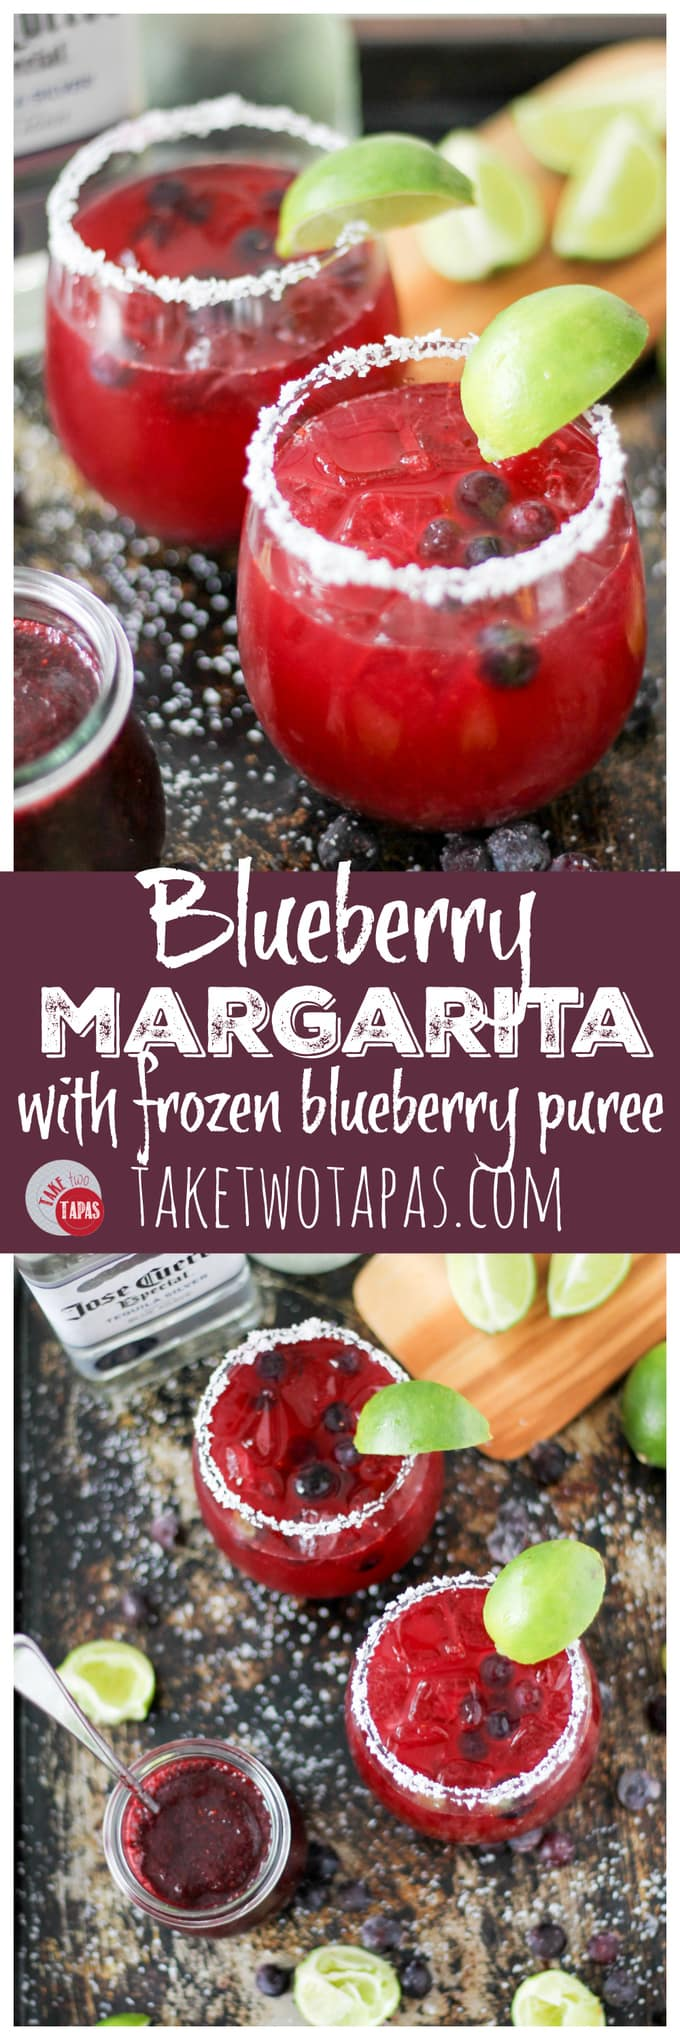 Blueberry Margaritas for a cool cocktail! Blueberry Margarita Recipe | Take Two Tapas